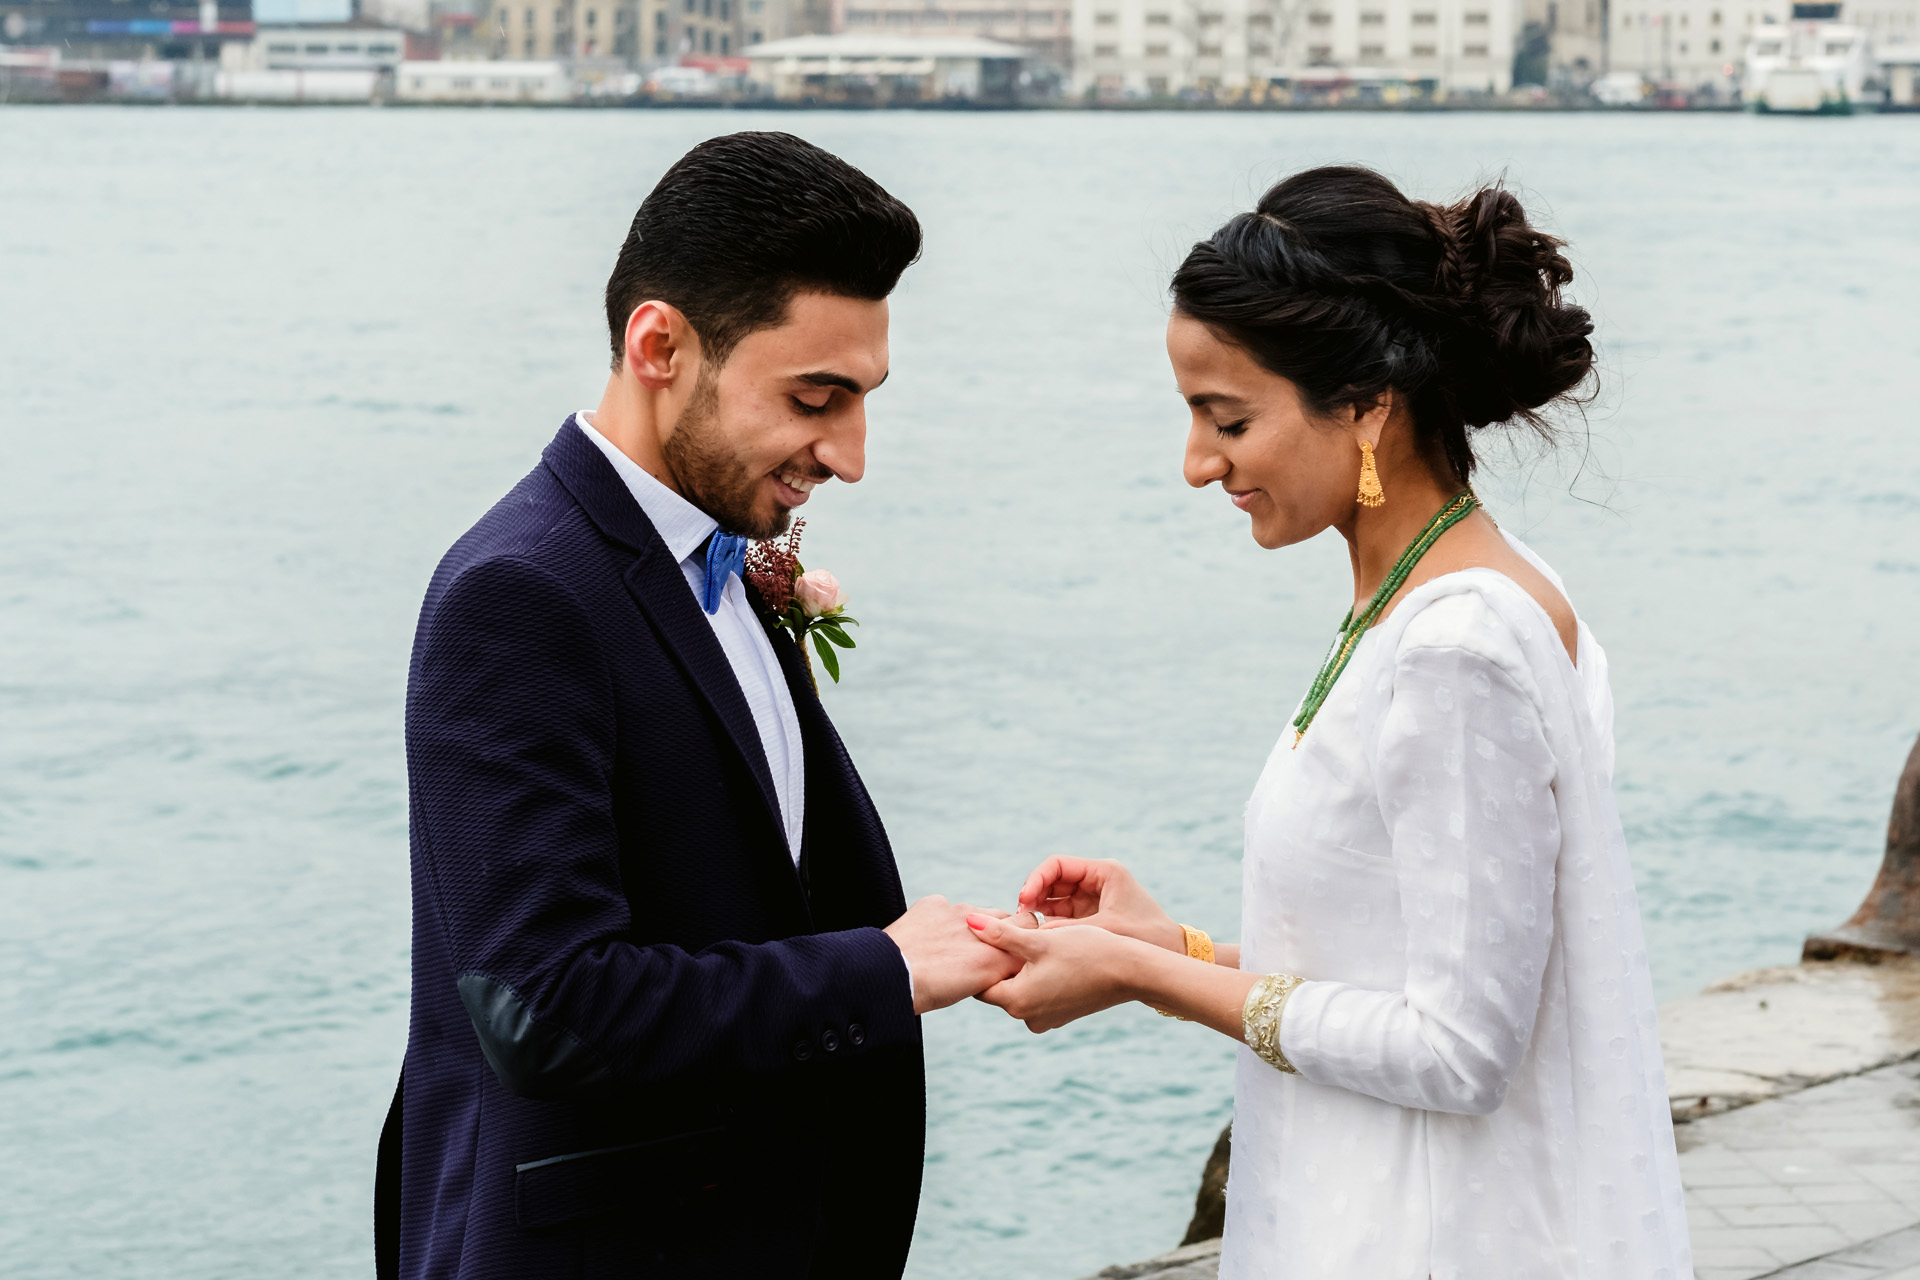 Bosporus Sea Elopement Ceremony Image | The couple decided they wanted to exchange rings in front of the Bosporus Sea in Turkey